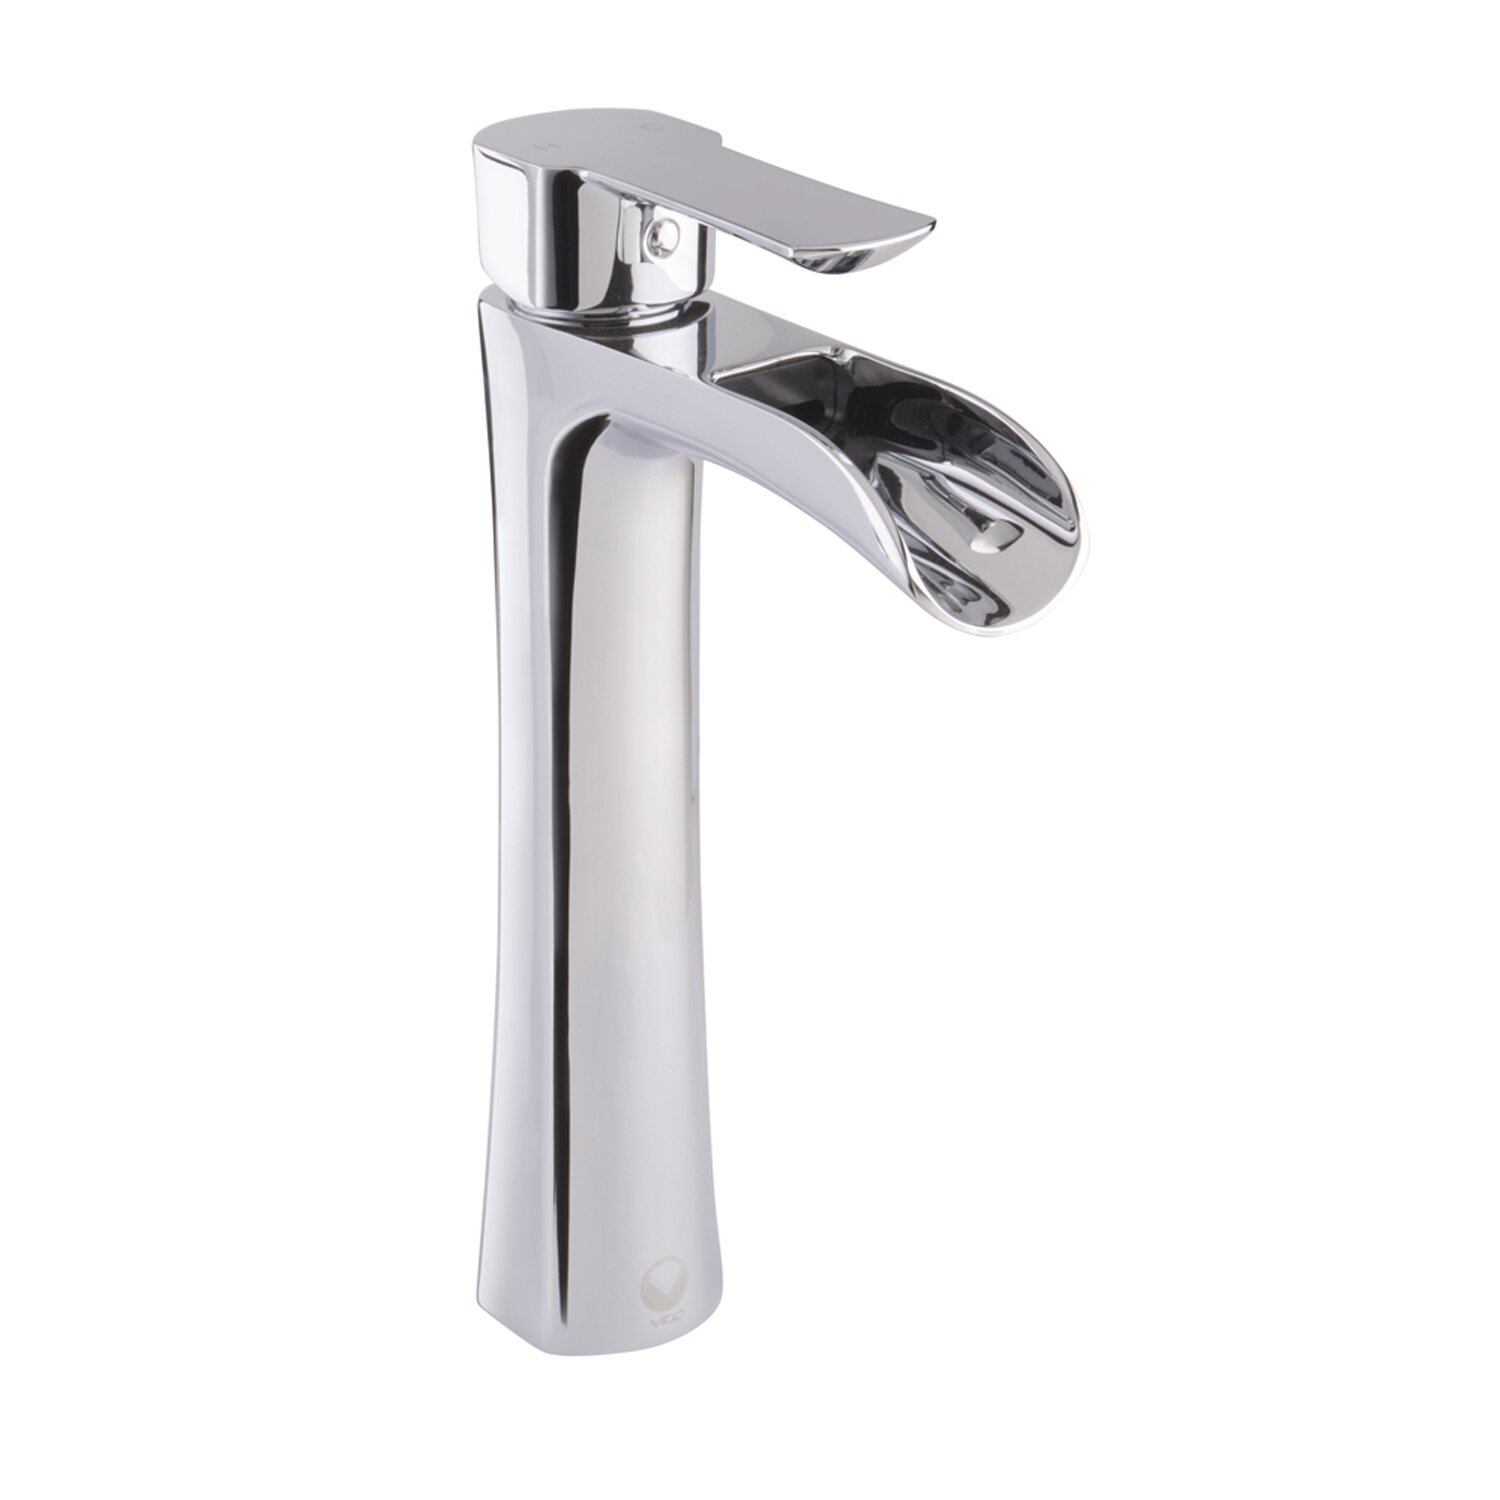 Vigo Niko Single Lever Vessel Bathroom Faucet Reviews Wayfair